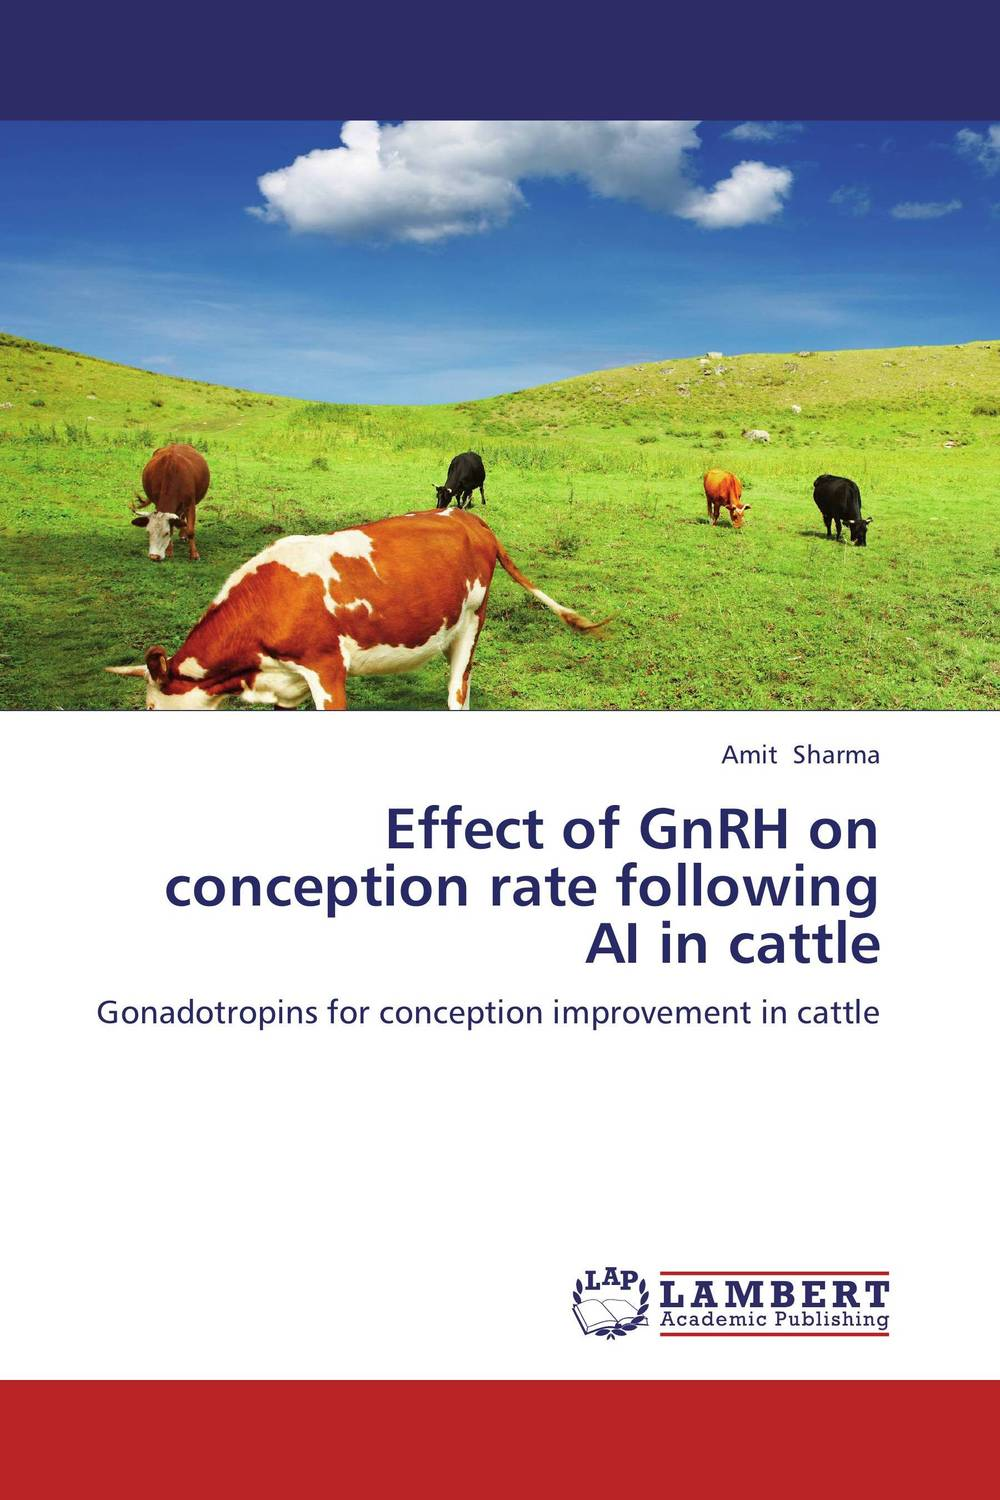 Effect of GnRH on conception rate following AI in cattle